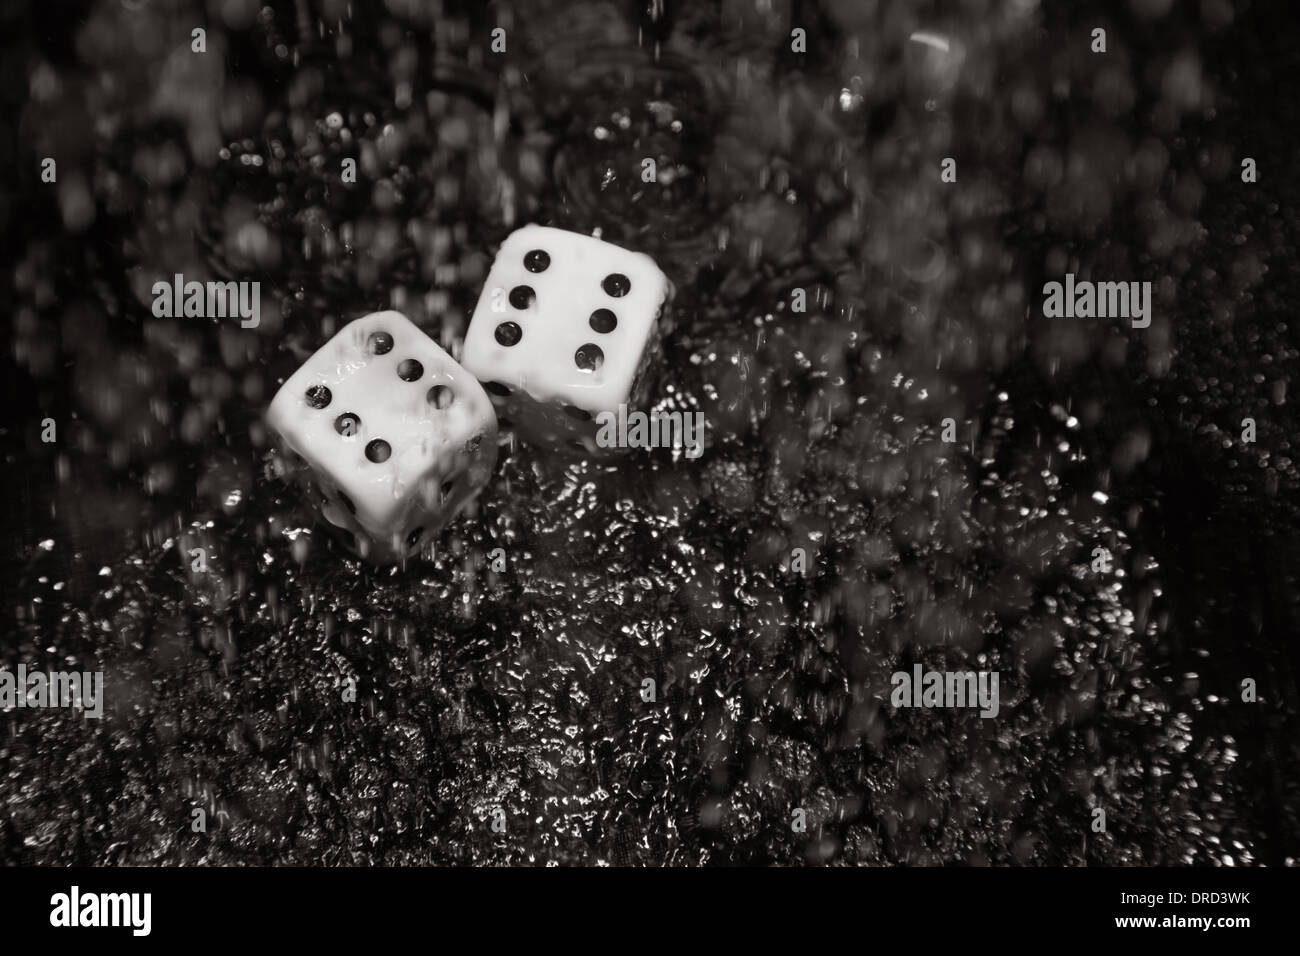 Gambling dices under the rain. Close-up - Stock Image